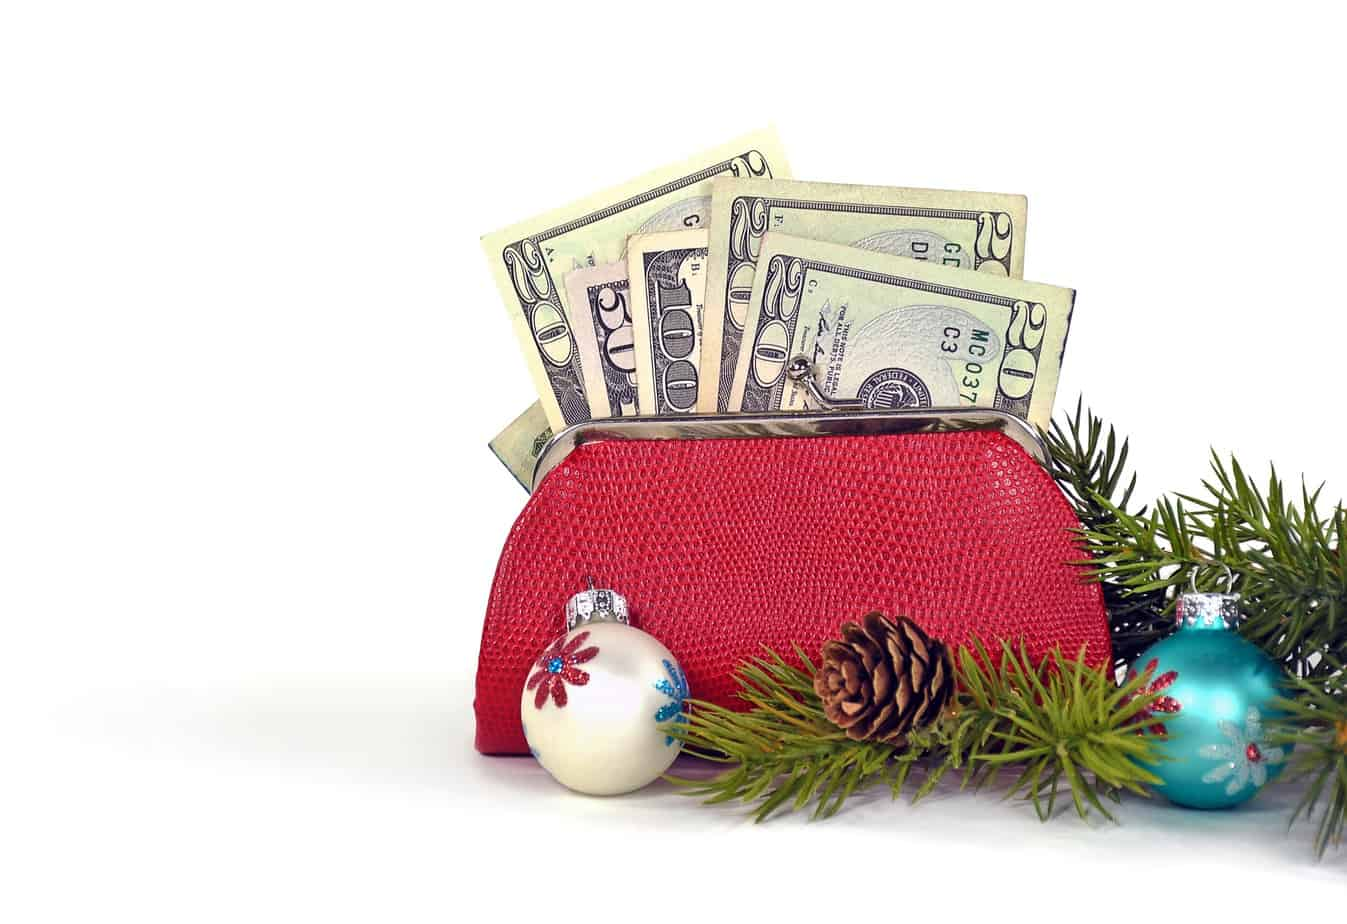 How To Make Quick Cash For The Holidays